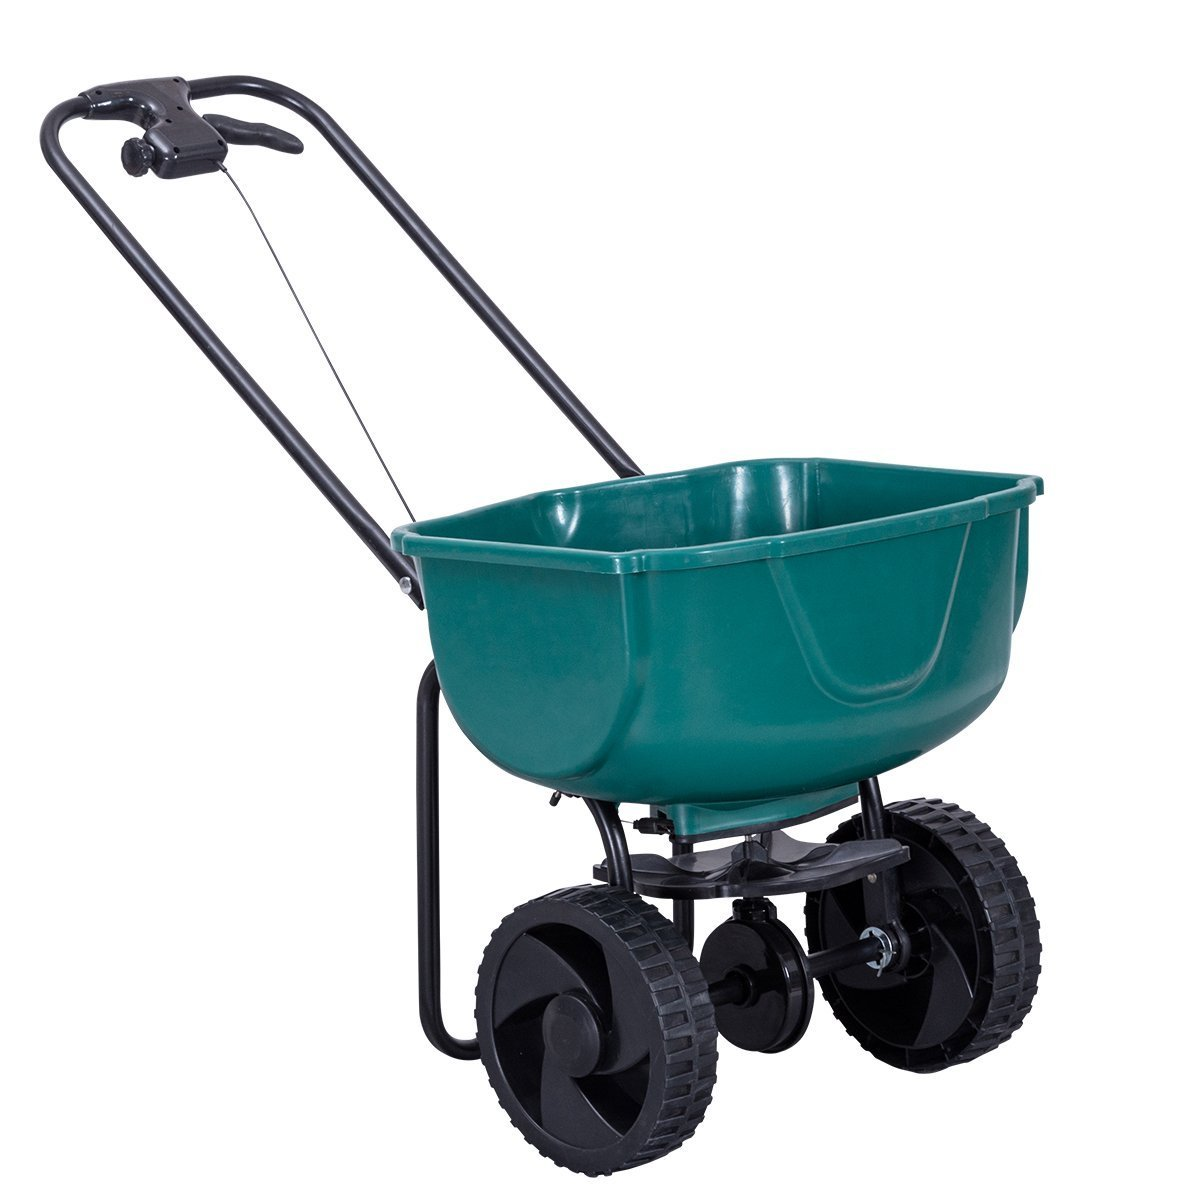 Goplus Broadcast Spreader 44Lbs Lawn Garden Seeder Walk-Behind Grass Fertilizer (Green) Superbuy